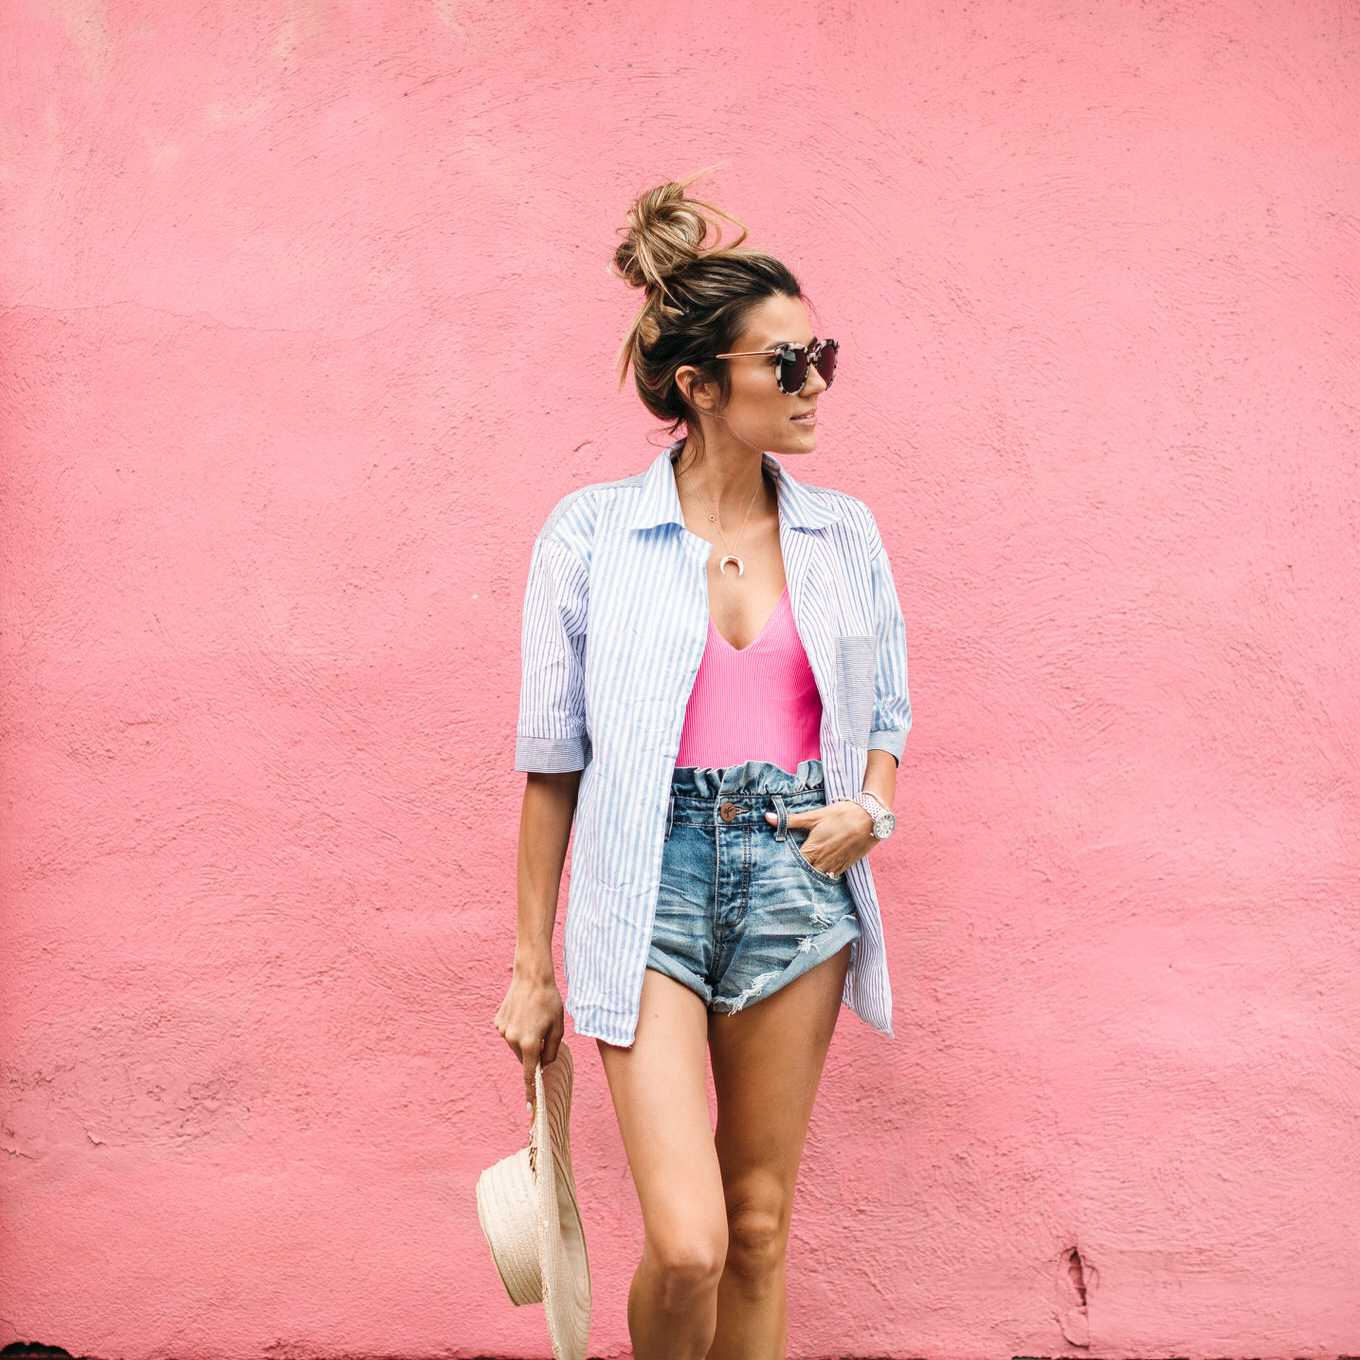 Woman in denim shorts and button-down shirt for summer fashion